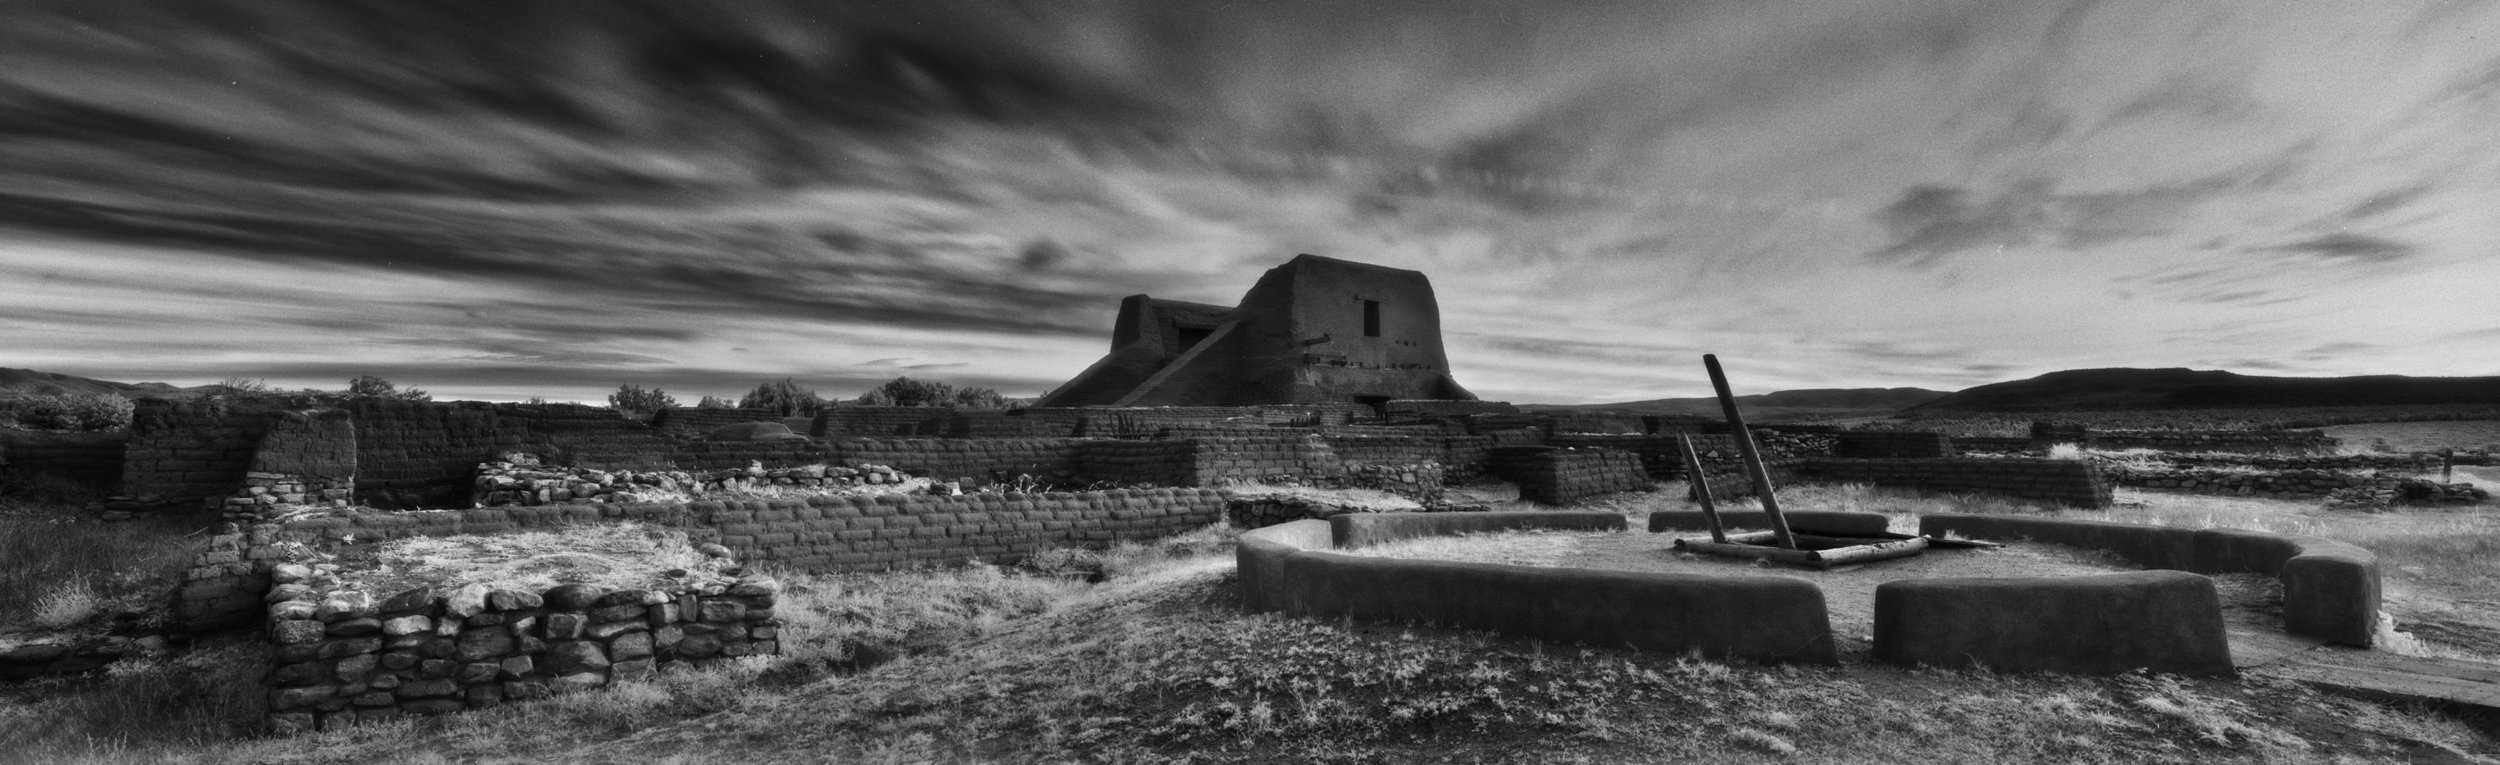 Mission and Convento/ Kiva- Pecos National Historical Park, New Mexico